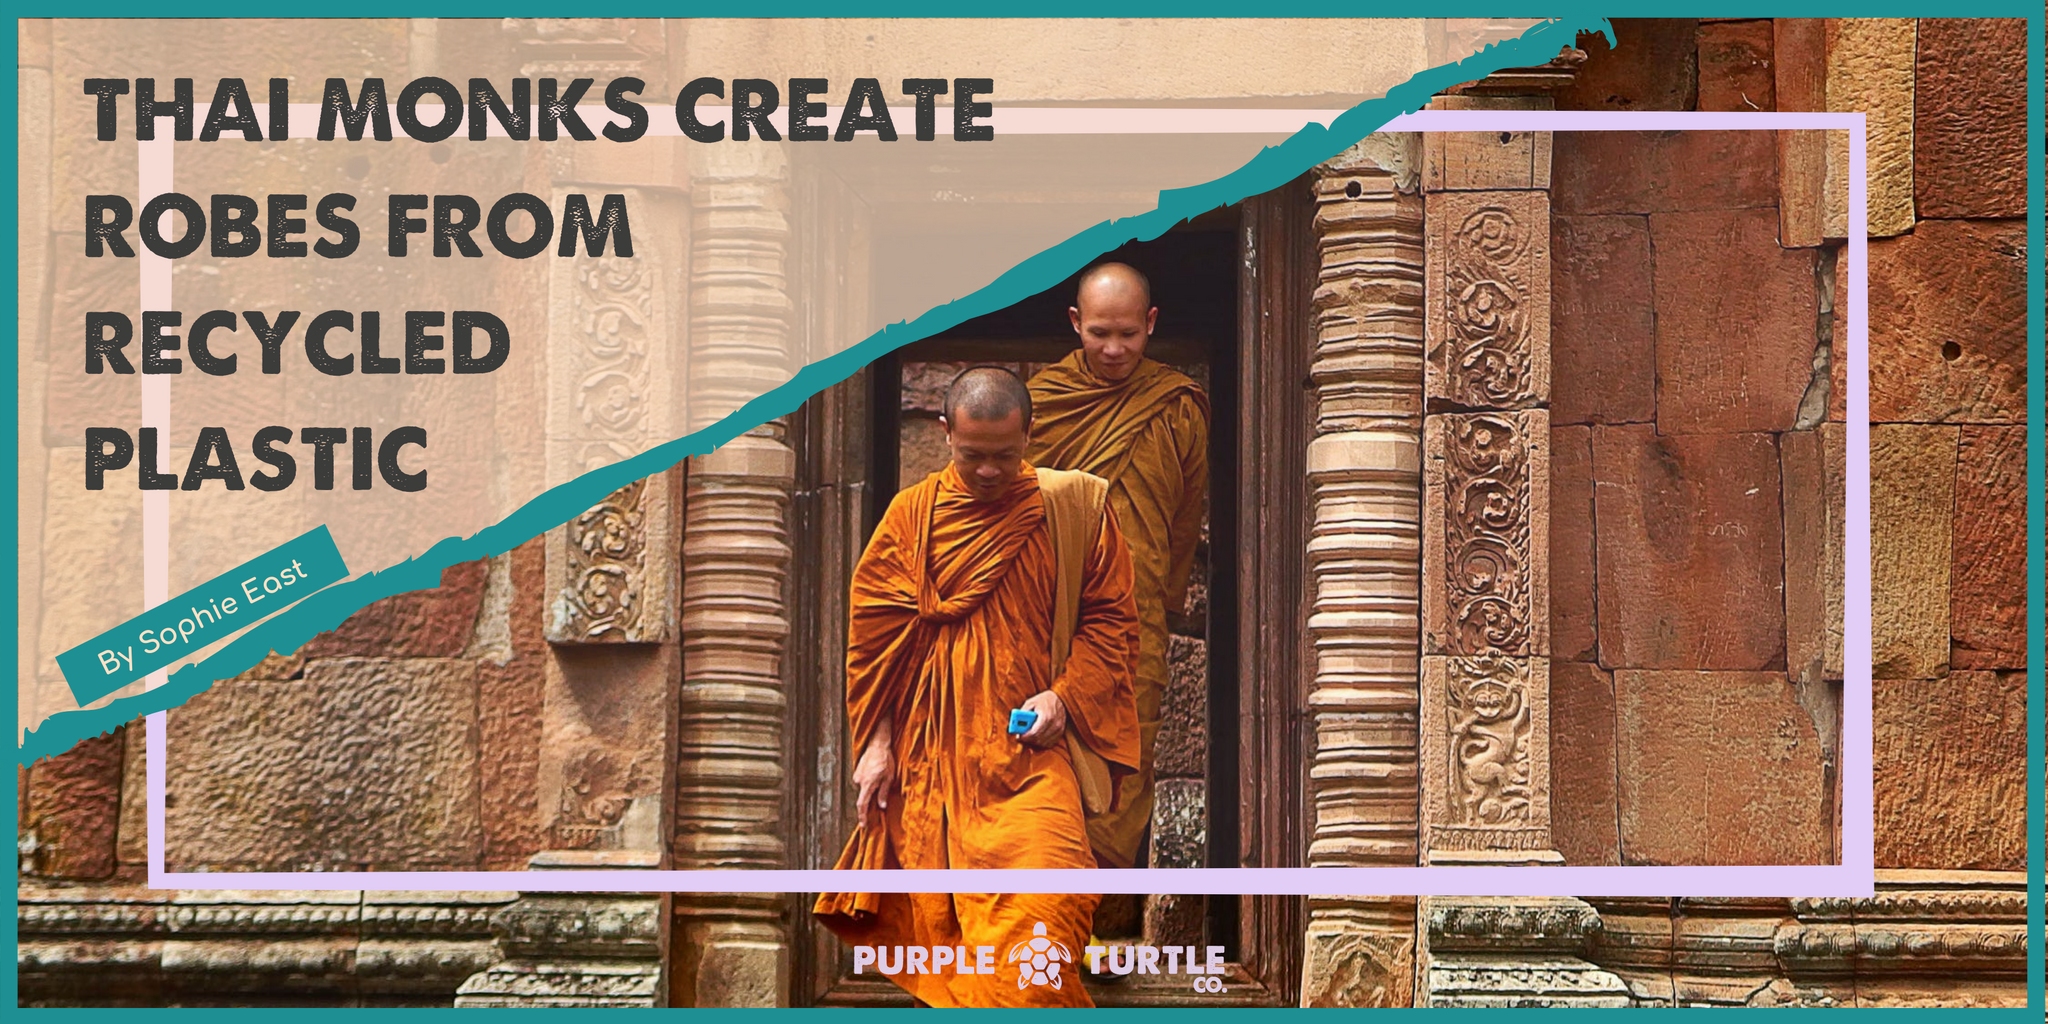 Thai monks create robes from recycled plastic